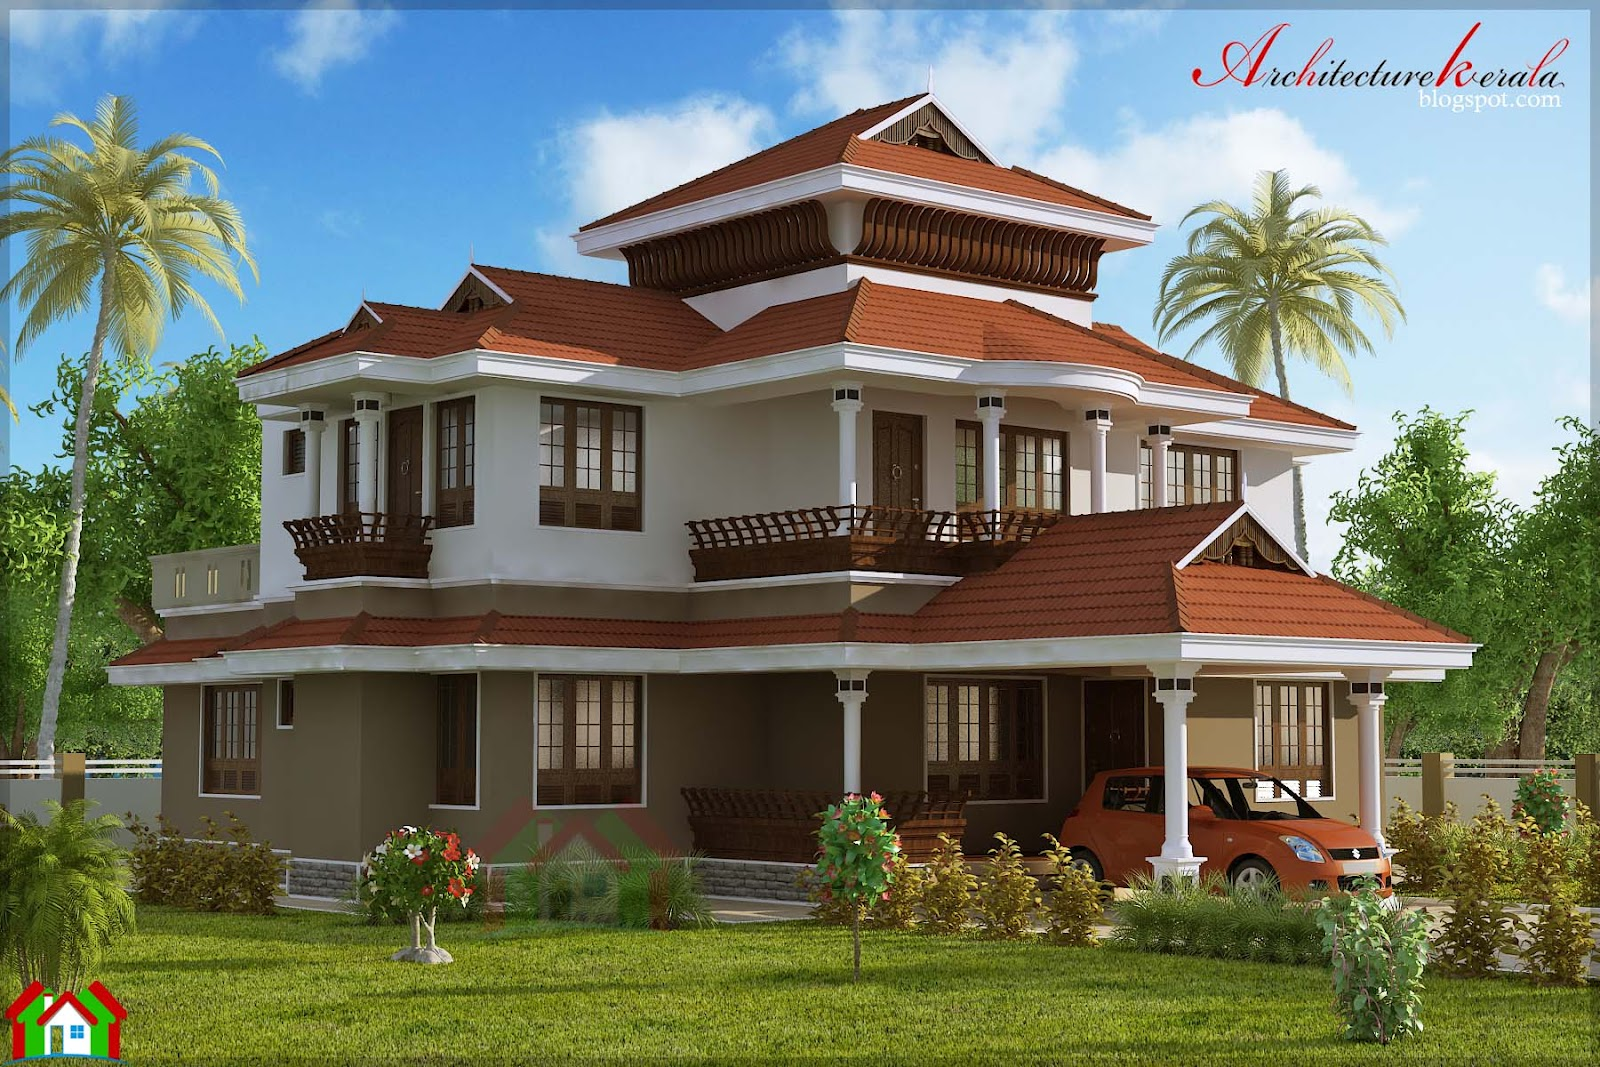 4 bed room traditional style house architecture kerala for Kerala house photos